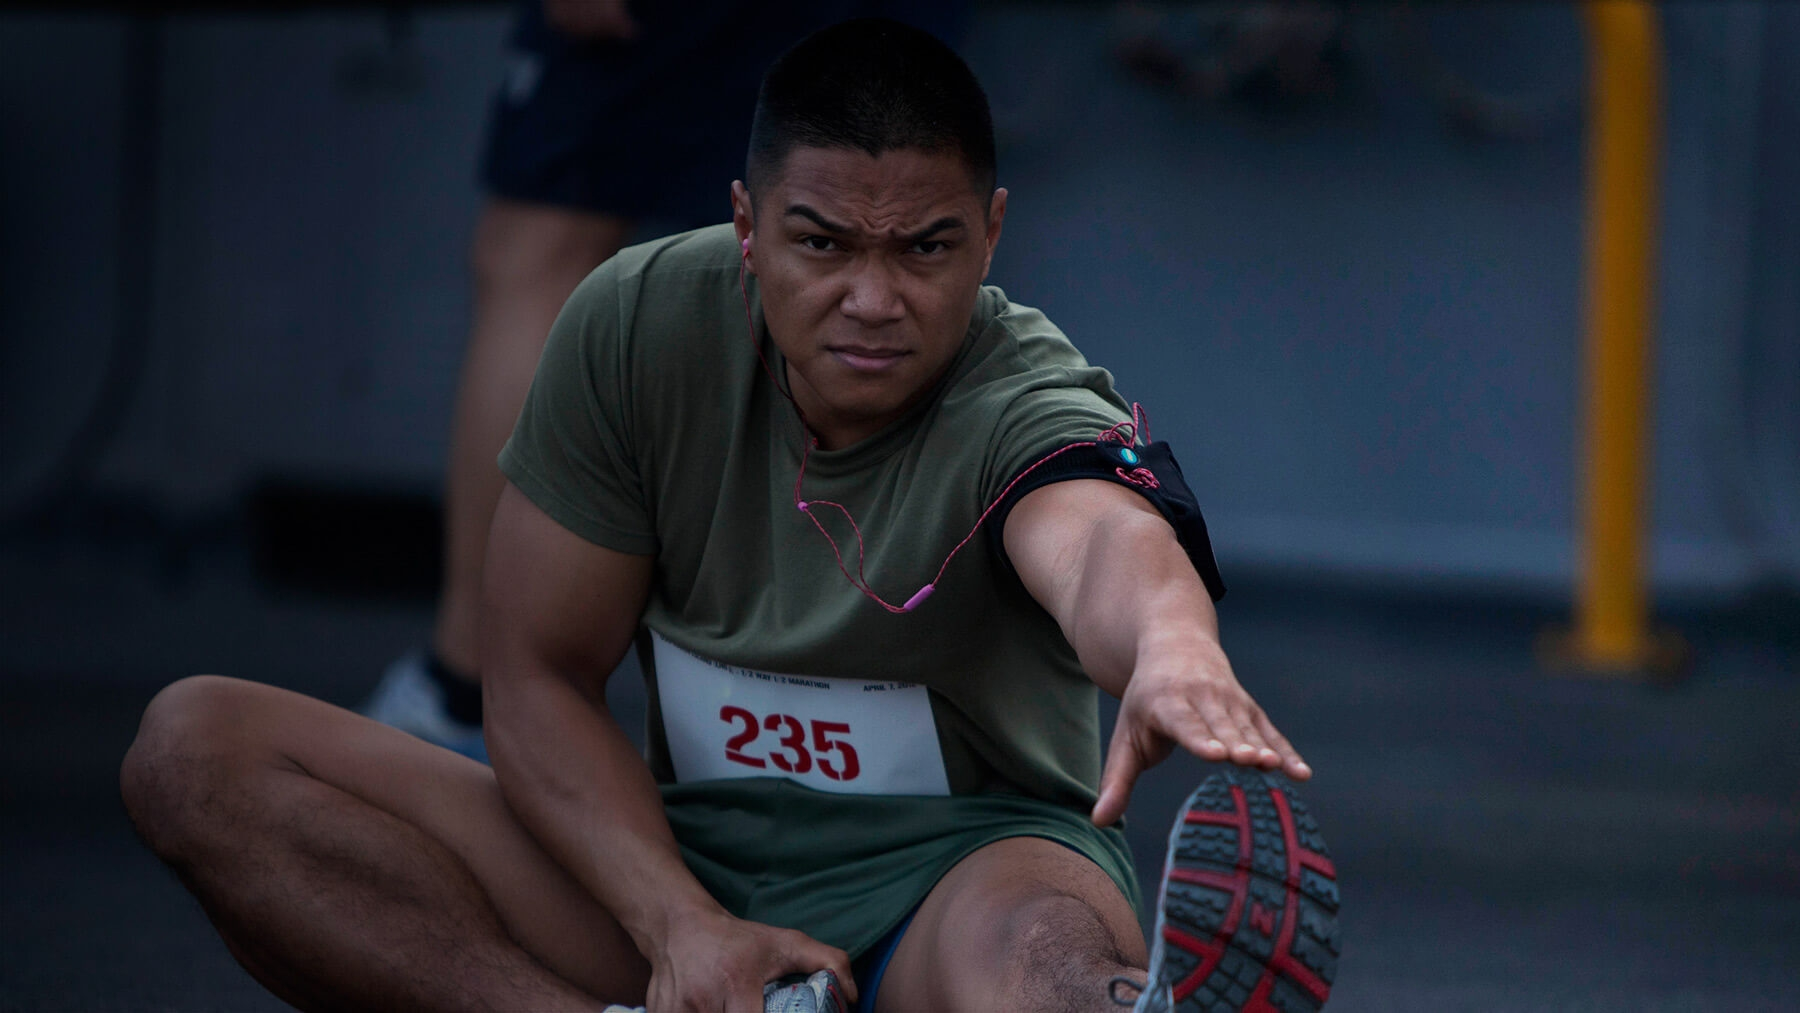 A Marine stretches before running.